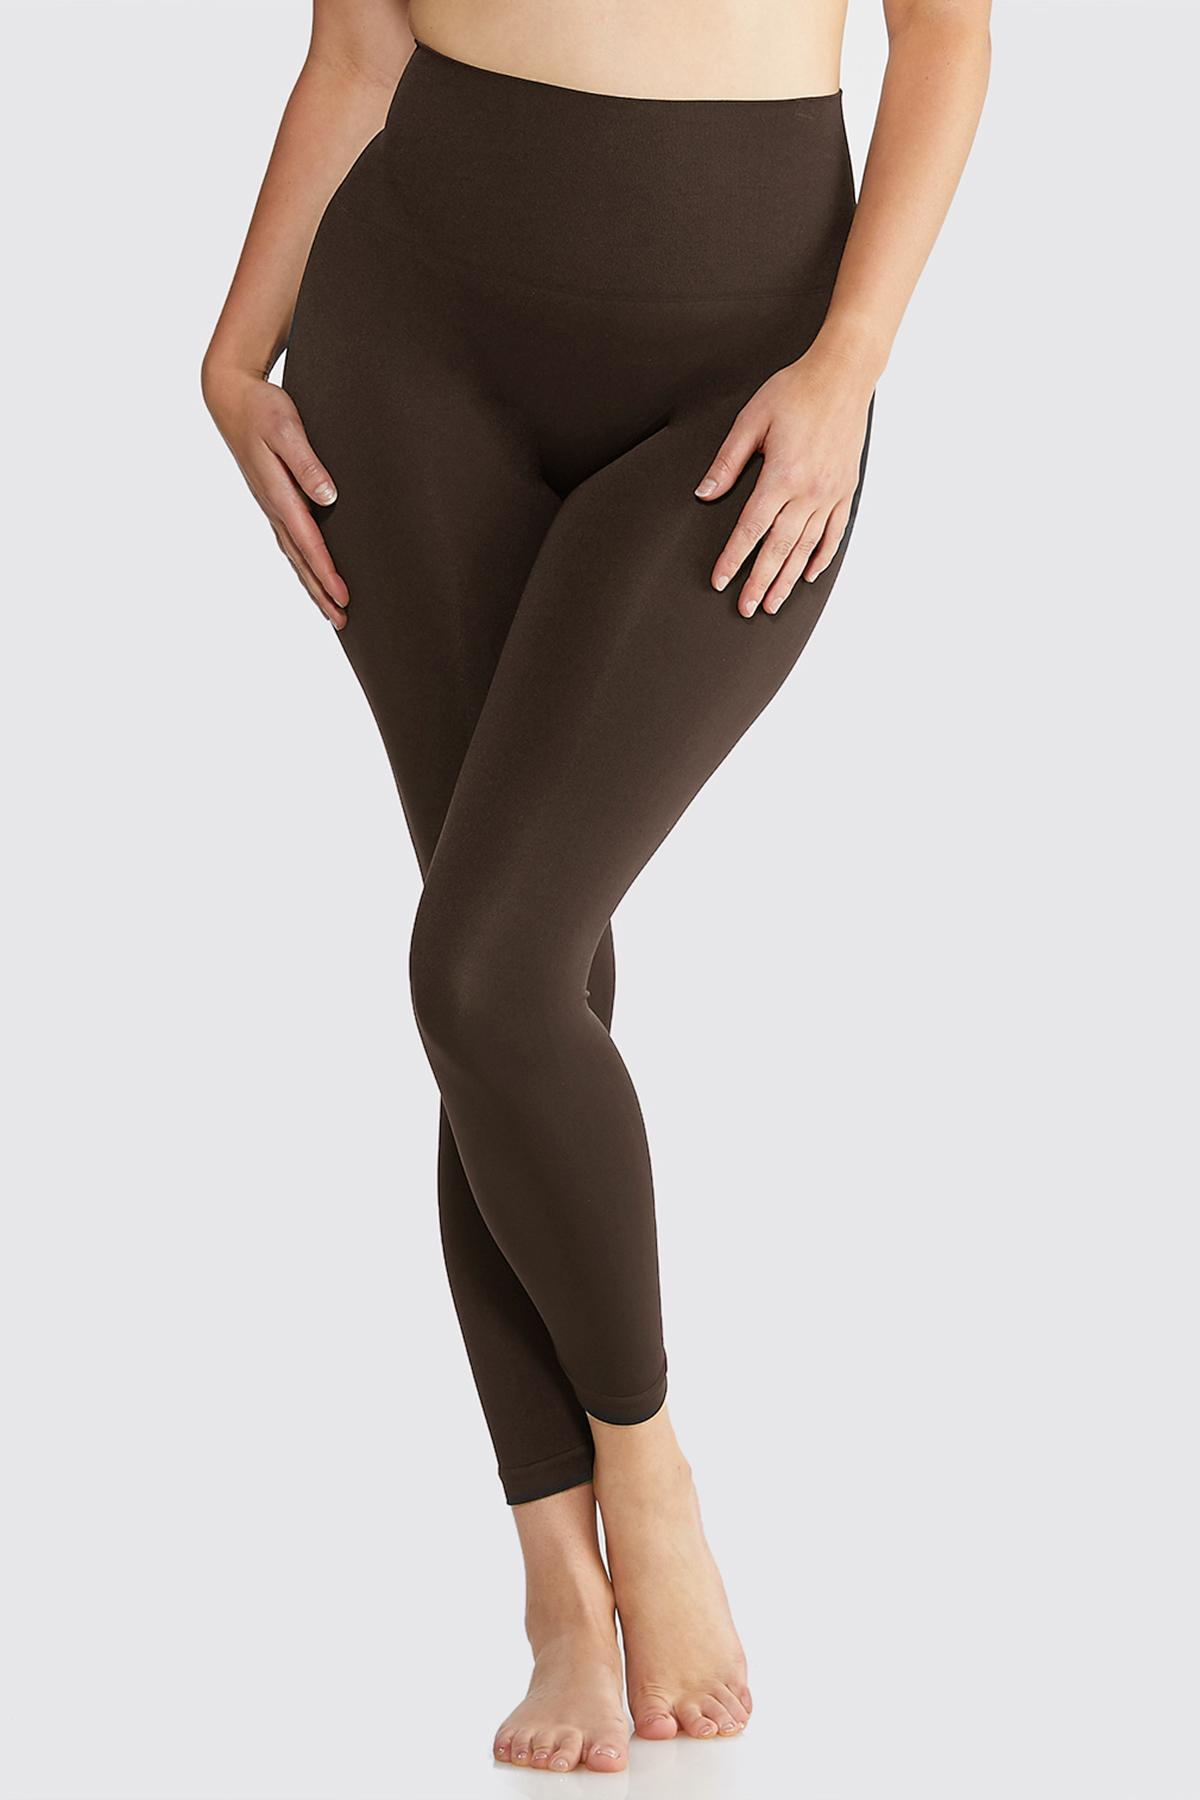 Plus Size The Perfect Brown Leggings